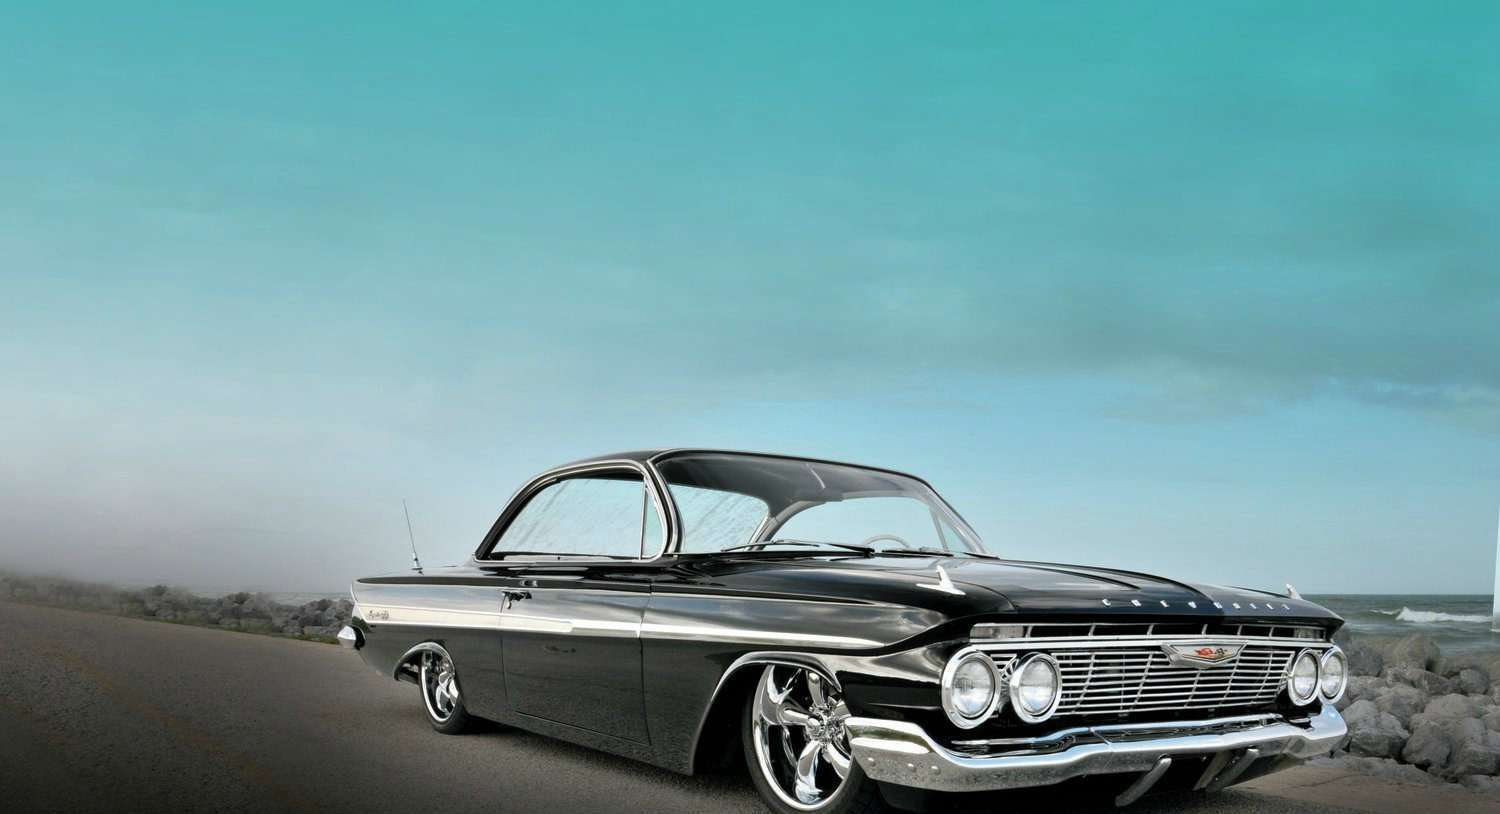 1961 Chevy Impala Wallpapers